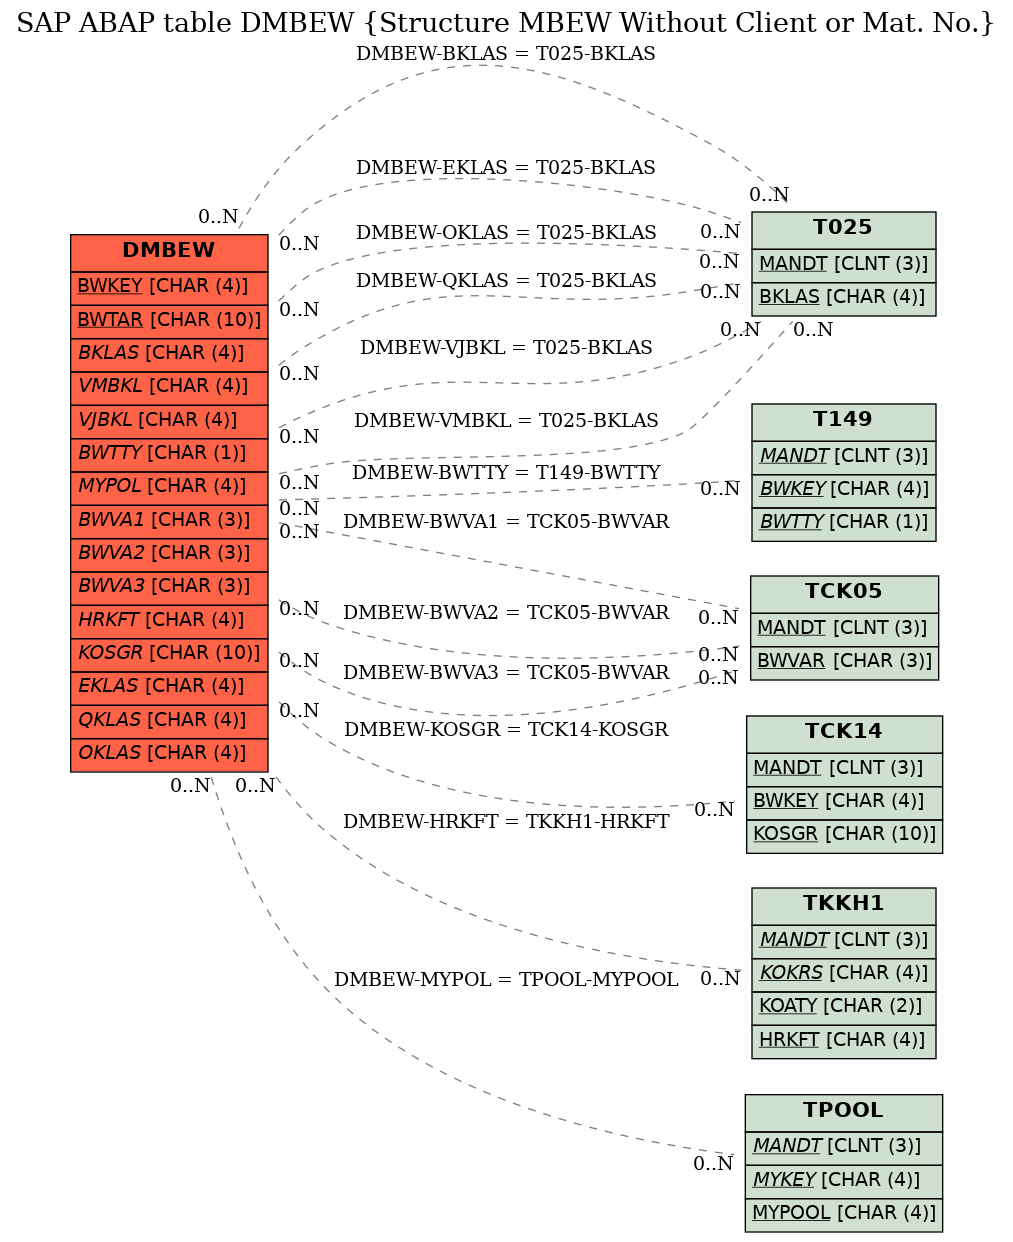 E-R Diagram for table DMBEW (Structure MBEW Without Client or Mat. No.)